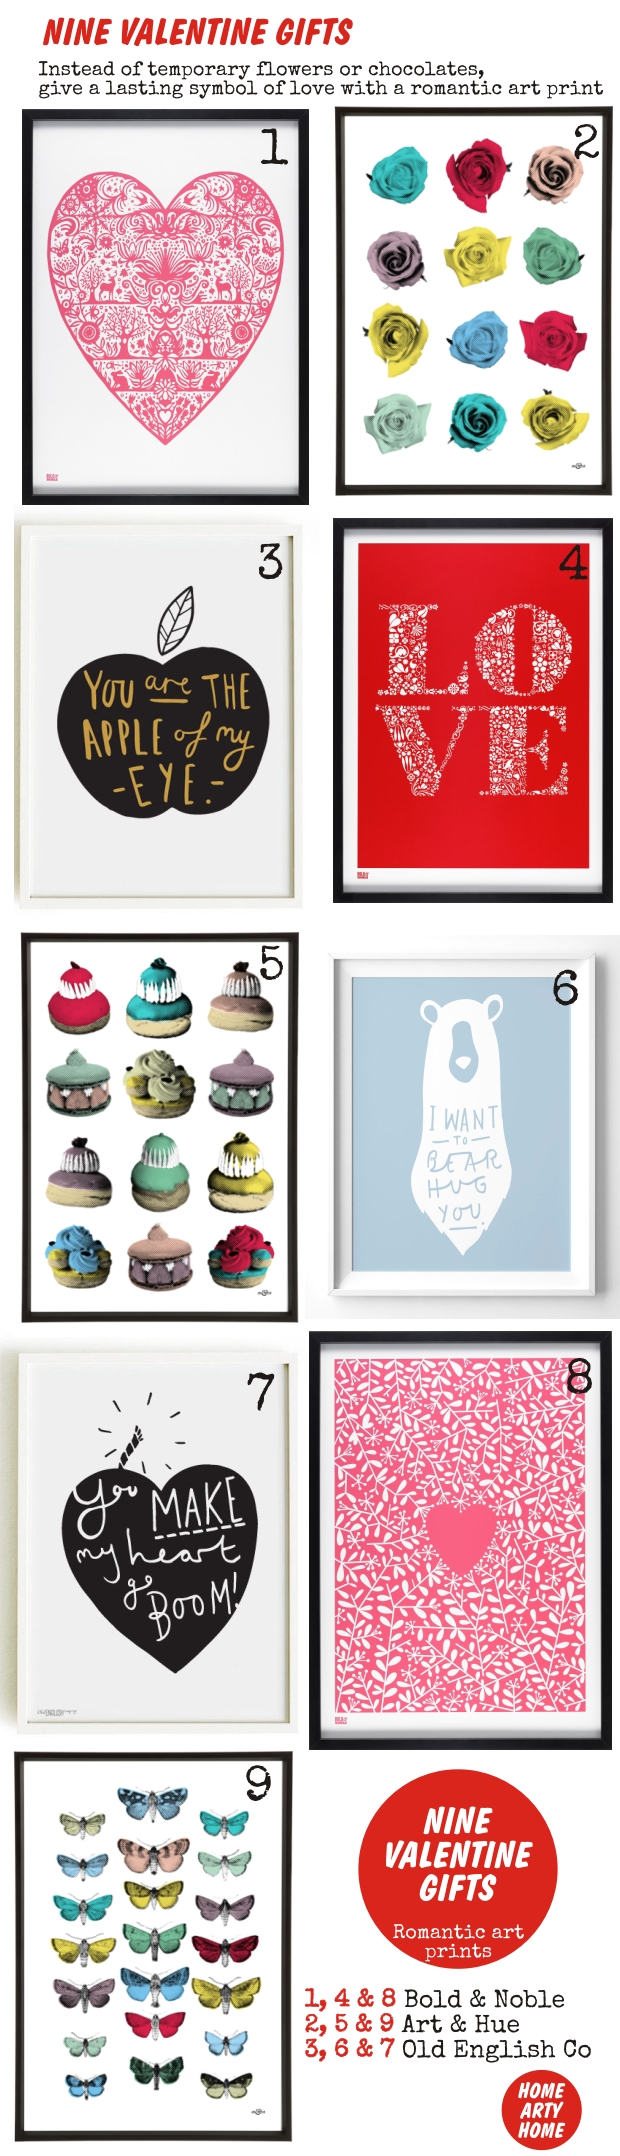 Nine Valentine Gifts homeartyhome